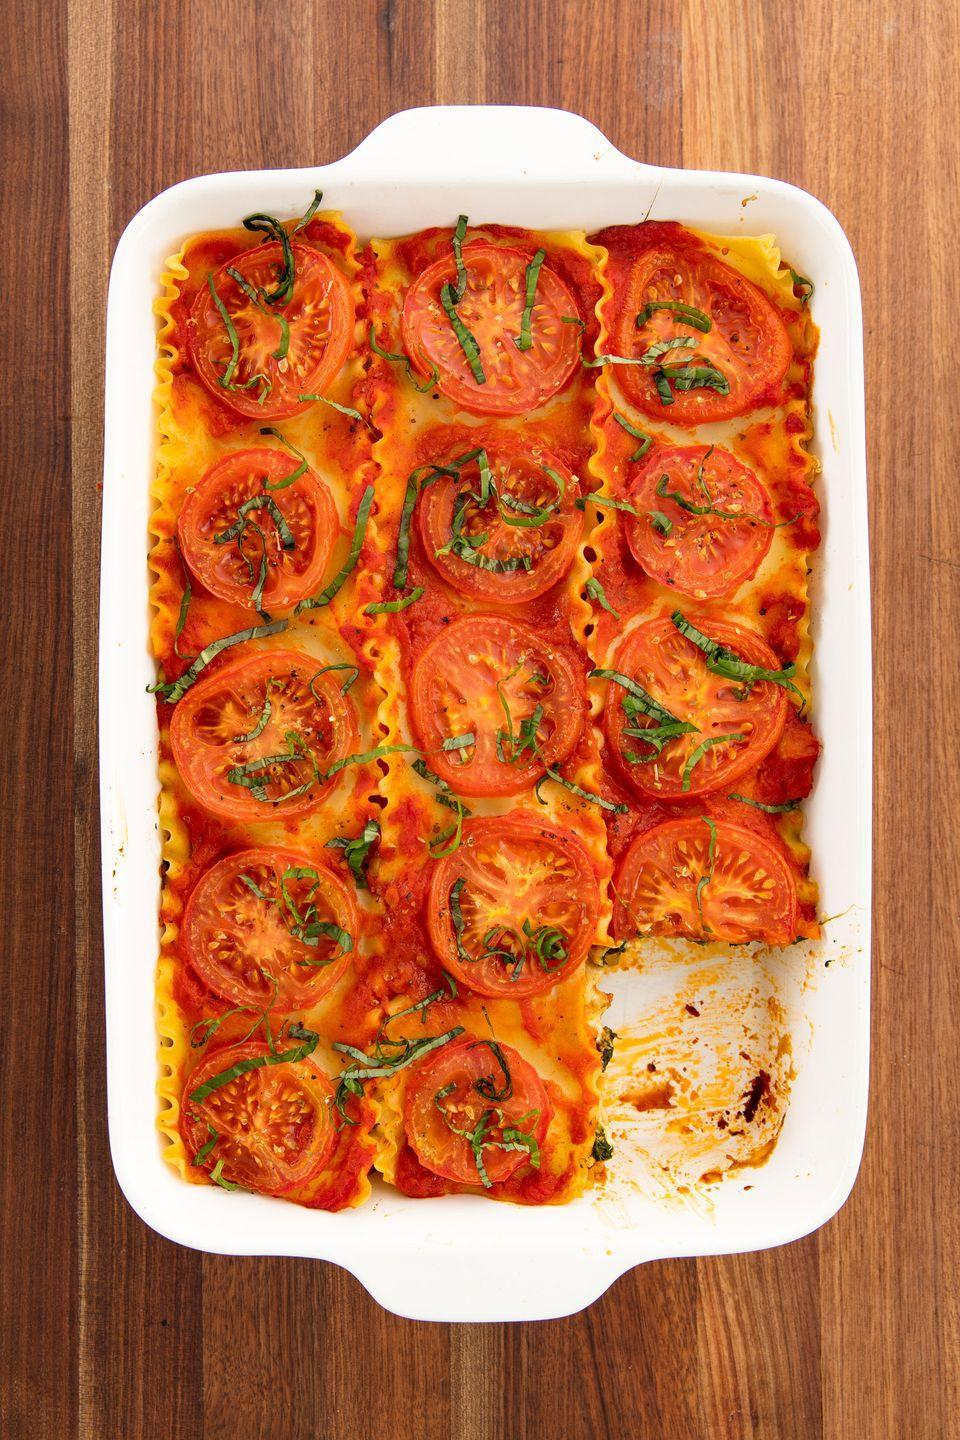 "<p>A classic lasagna made easy.</p><p>Get the recipe from <a href=""https://www.delish.com/cooking/recipe-ideas/recipes/a58469/best-vegan-lasagna-recipe/"" rel=""nofollow noopener"" target=""_blank"" data-ylk=""slk:Delish"" class=""link rapid-noclick-resp"">Delish</a>. </p>"